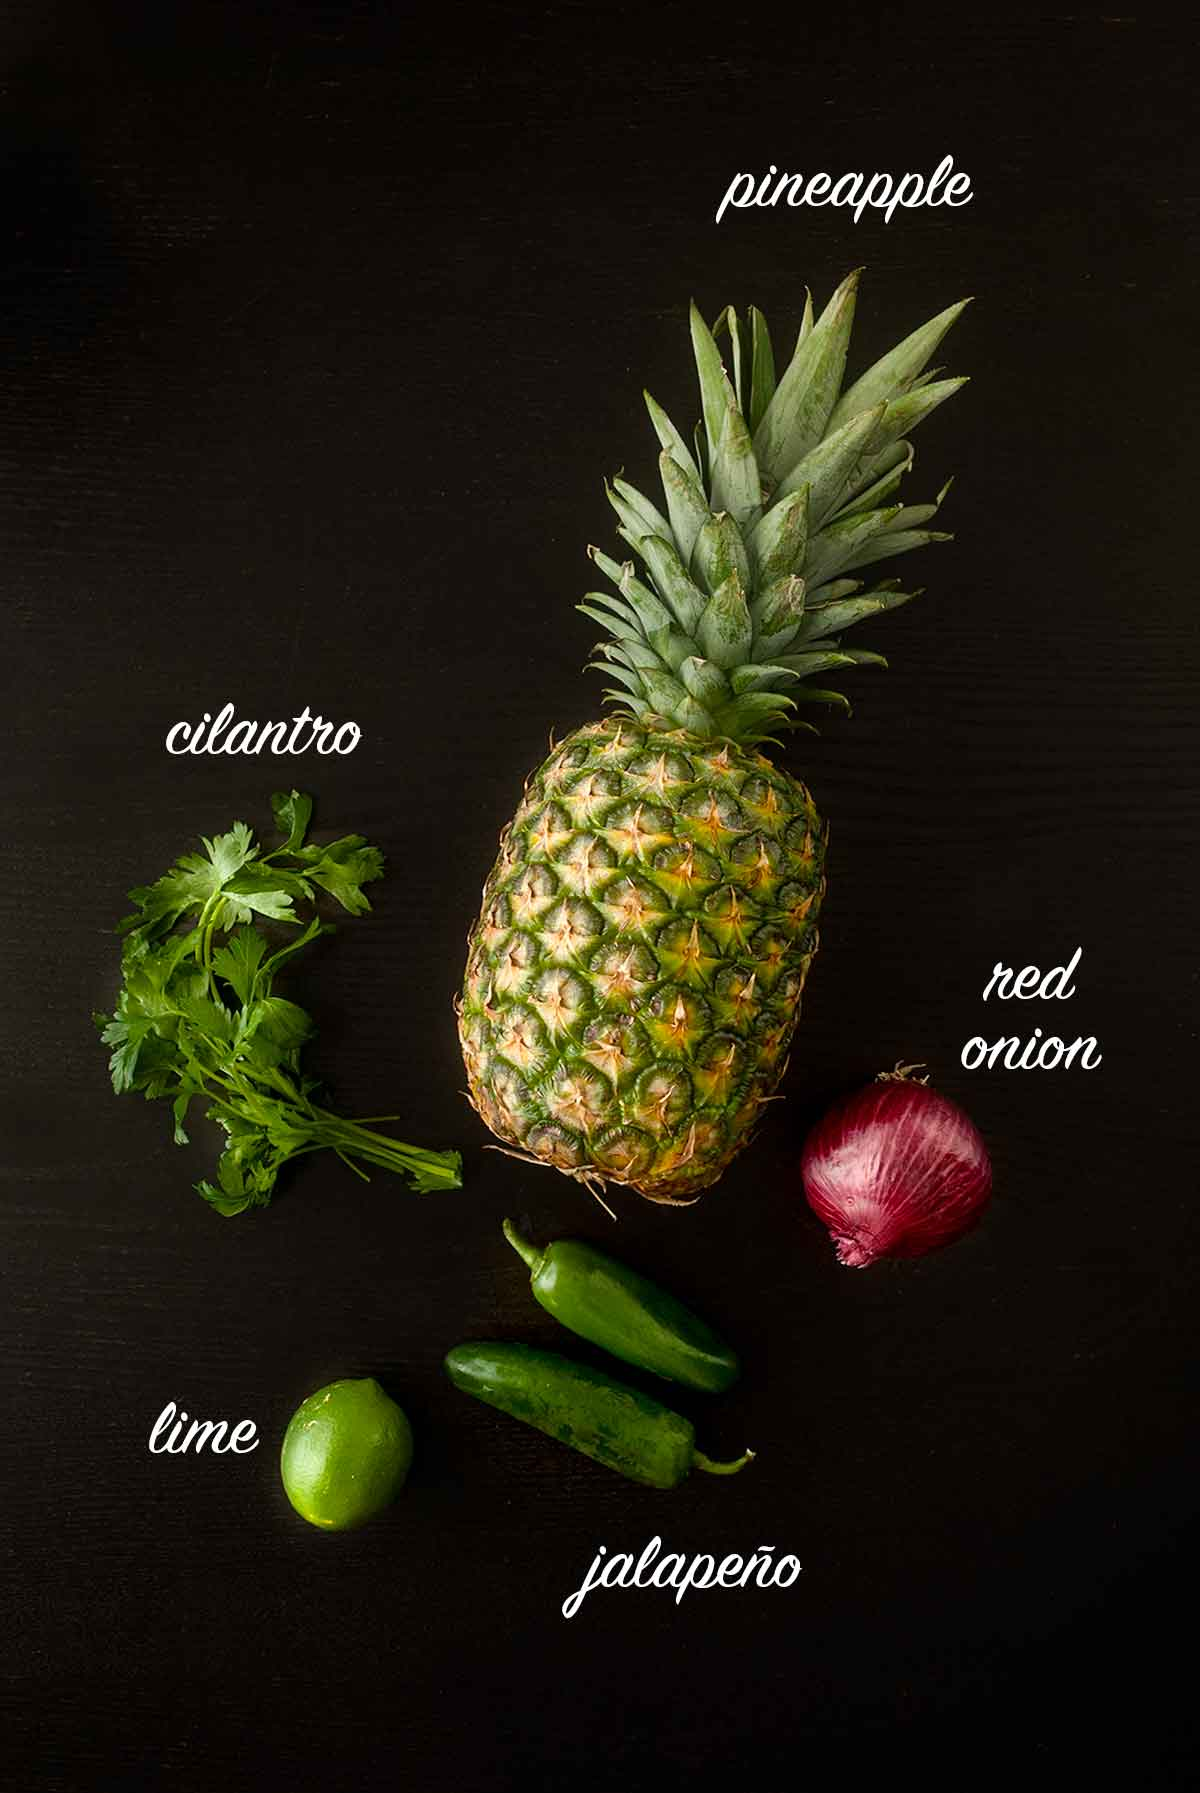 Ingredients for making pineapple jalapeño salsa on a black table with titles describing what they are.